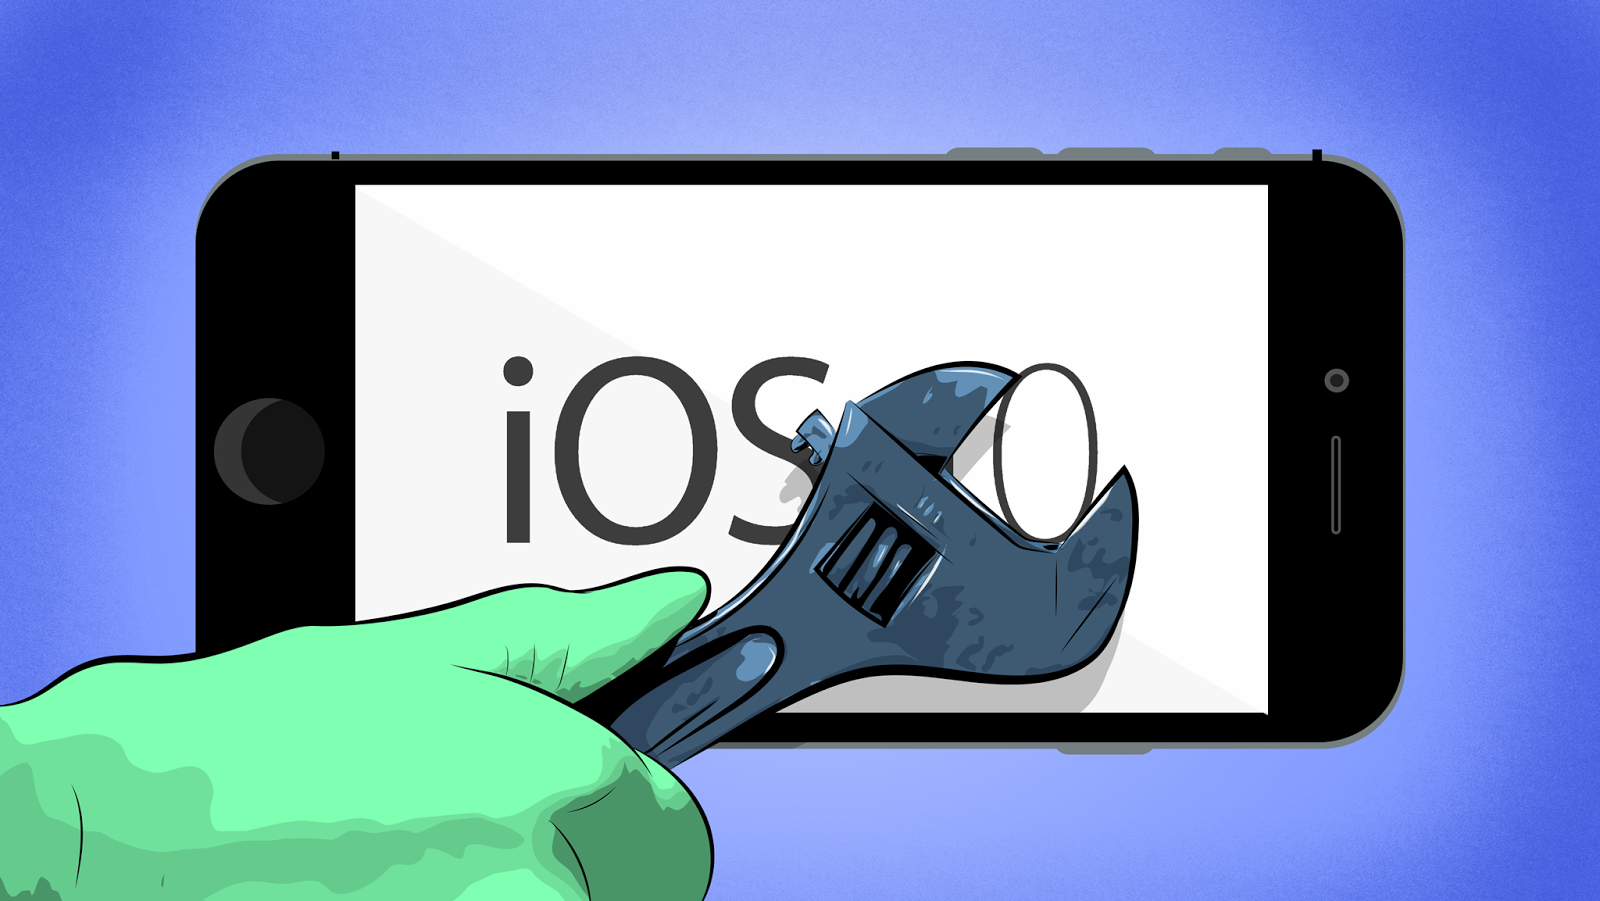 Fix/Repair iOS System To Normal: [Solved]How to Fix iOS System Issues